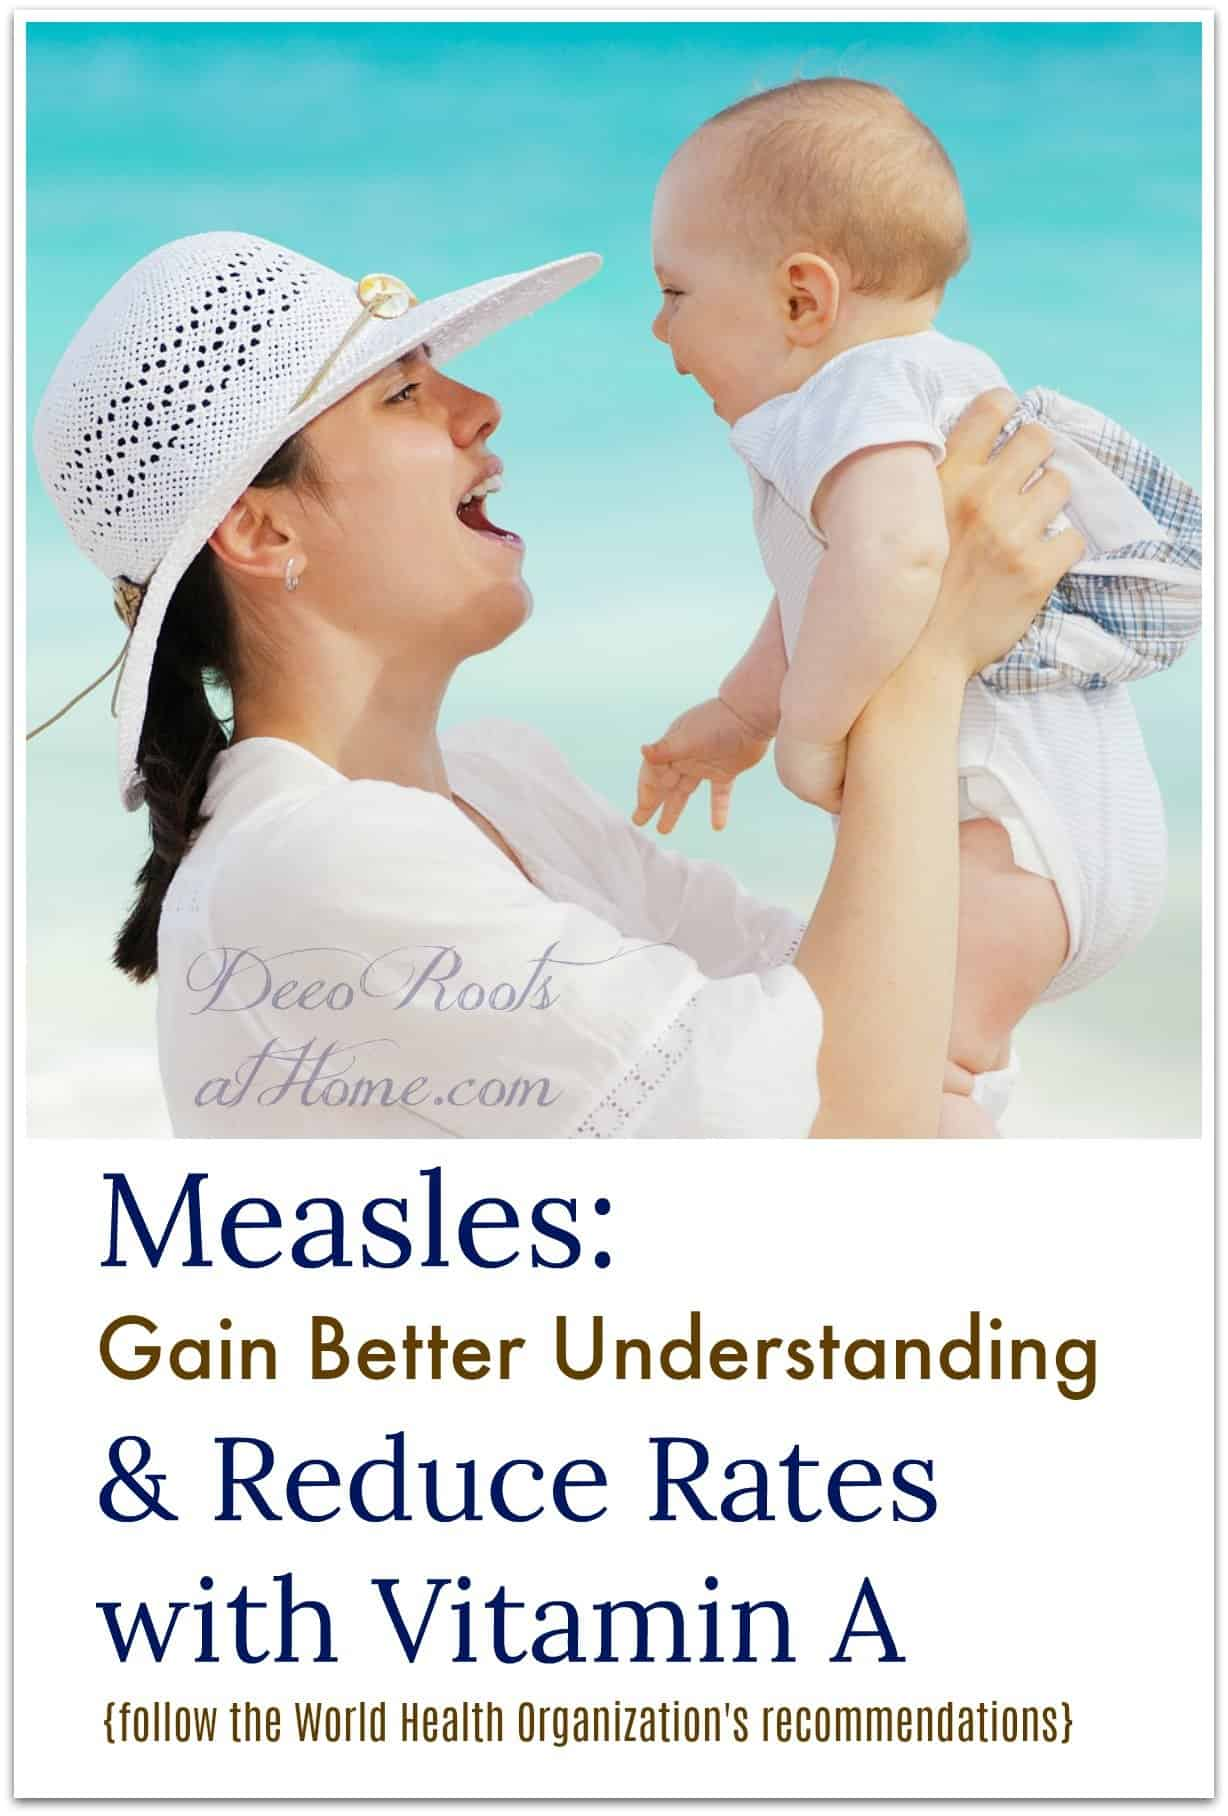 Measles: Gain Better Understanding & Reduce Rates with Vitamin A